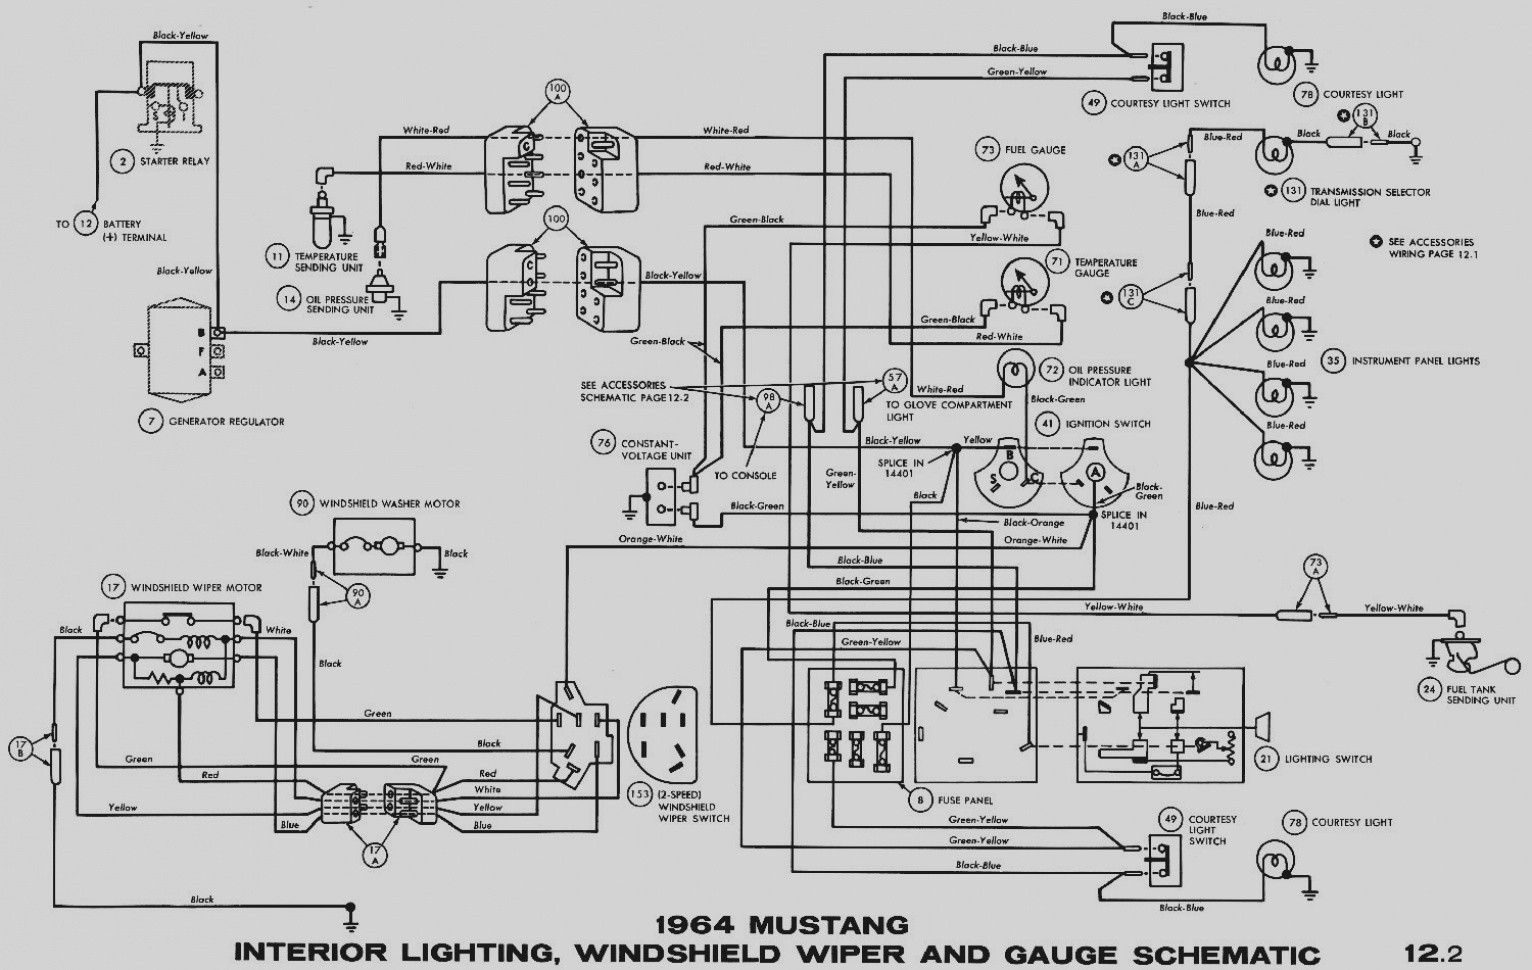 66 Mustang Wiring Diagram Wipers - wiring diagram subject-multi -  subject-multi.pennyapp.it | Ford Mustang Wiper Switch Wiring Diagram 1967 |  | PennyApp